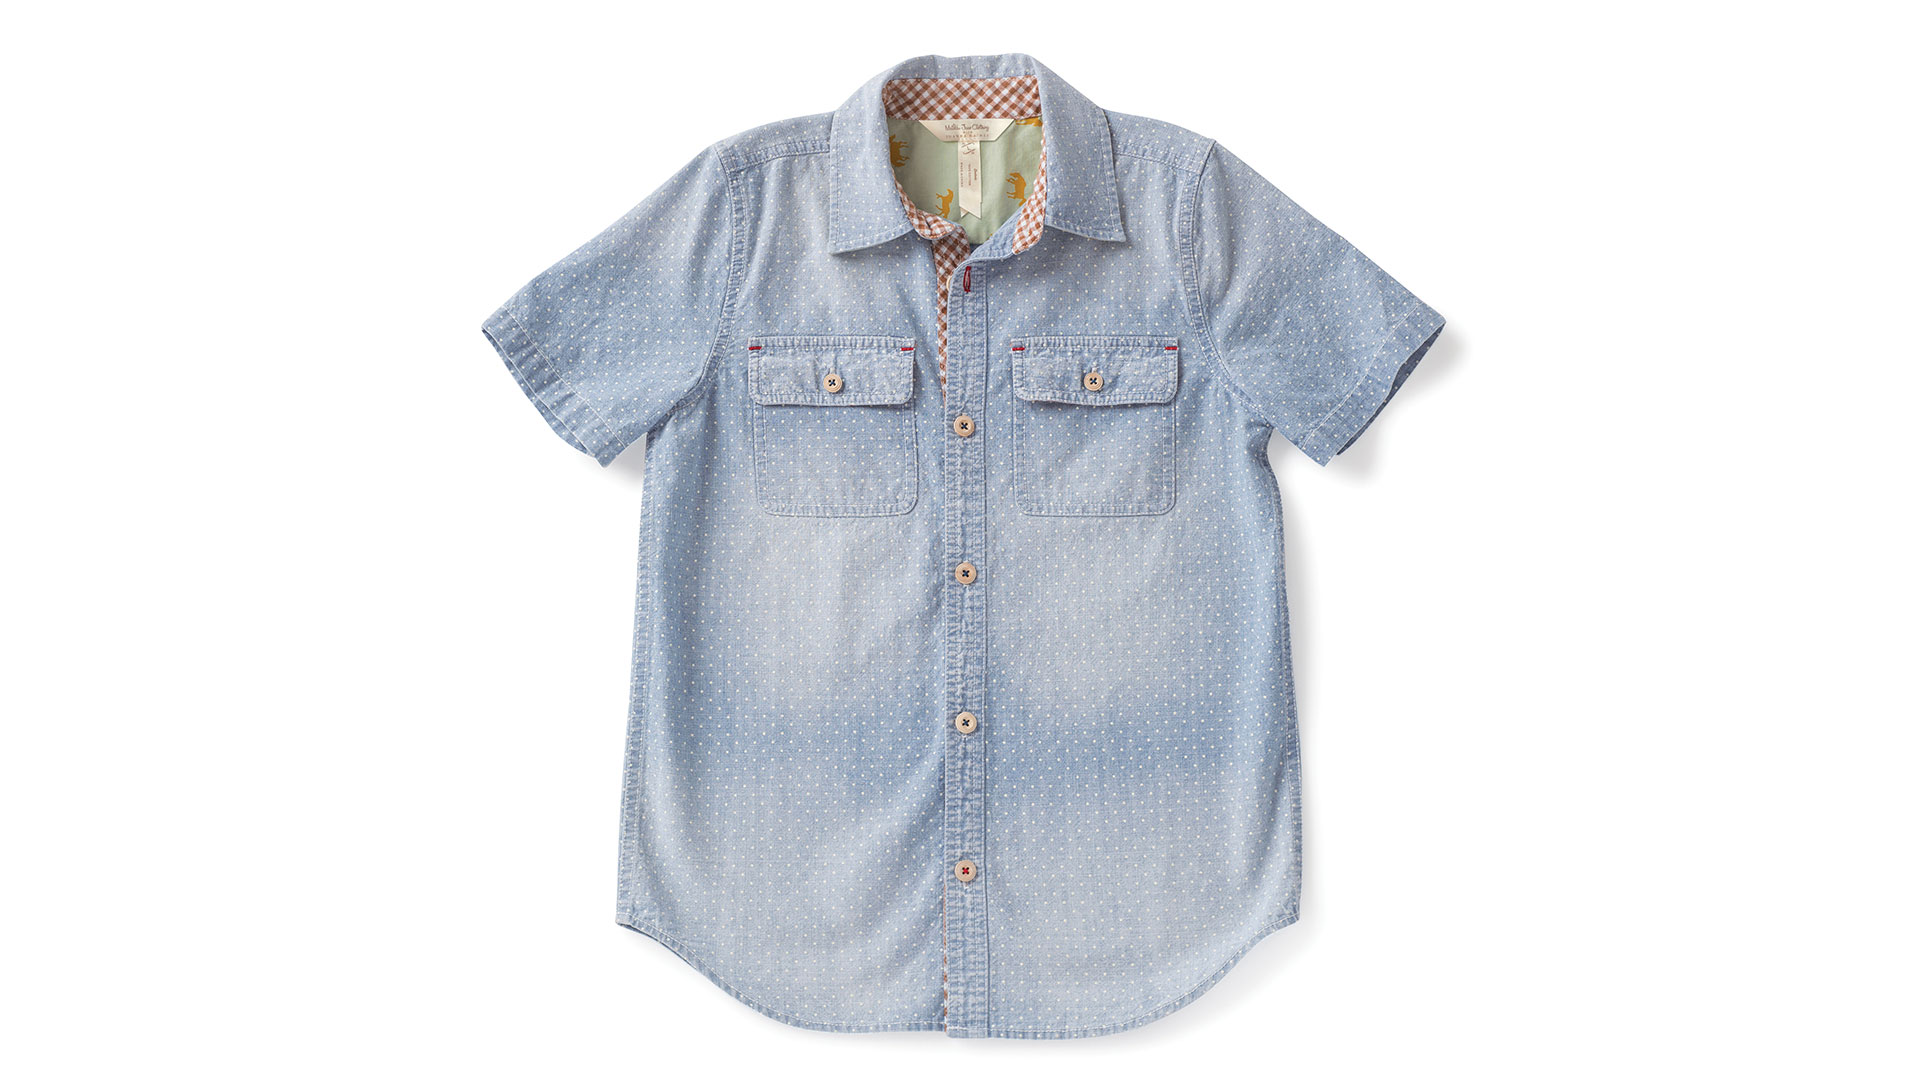 Joanna Gaines Matilda Jane Boy Shirt